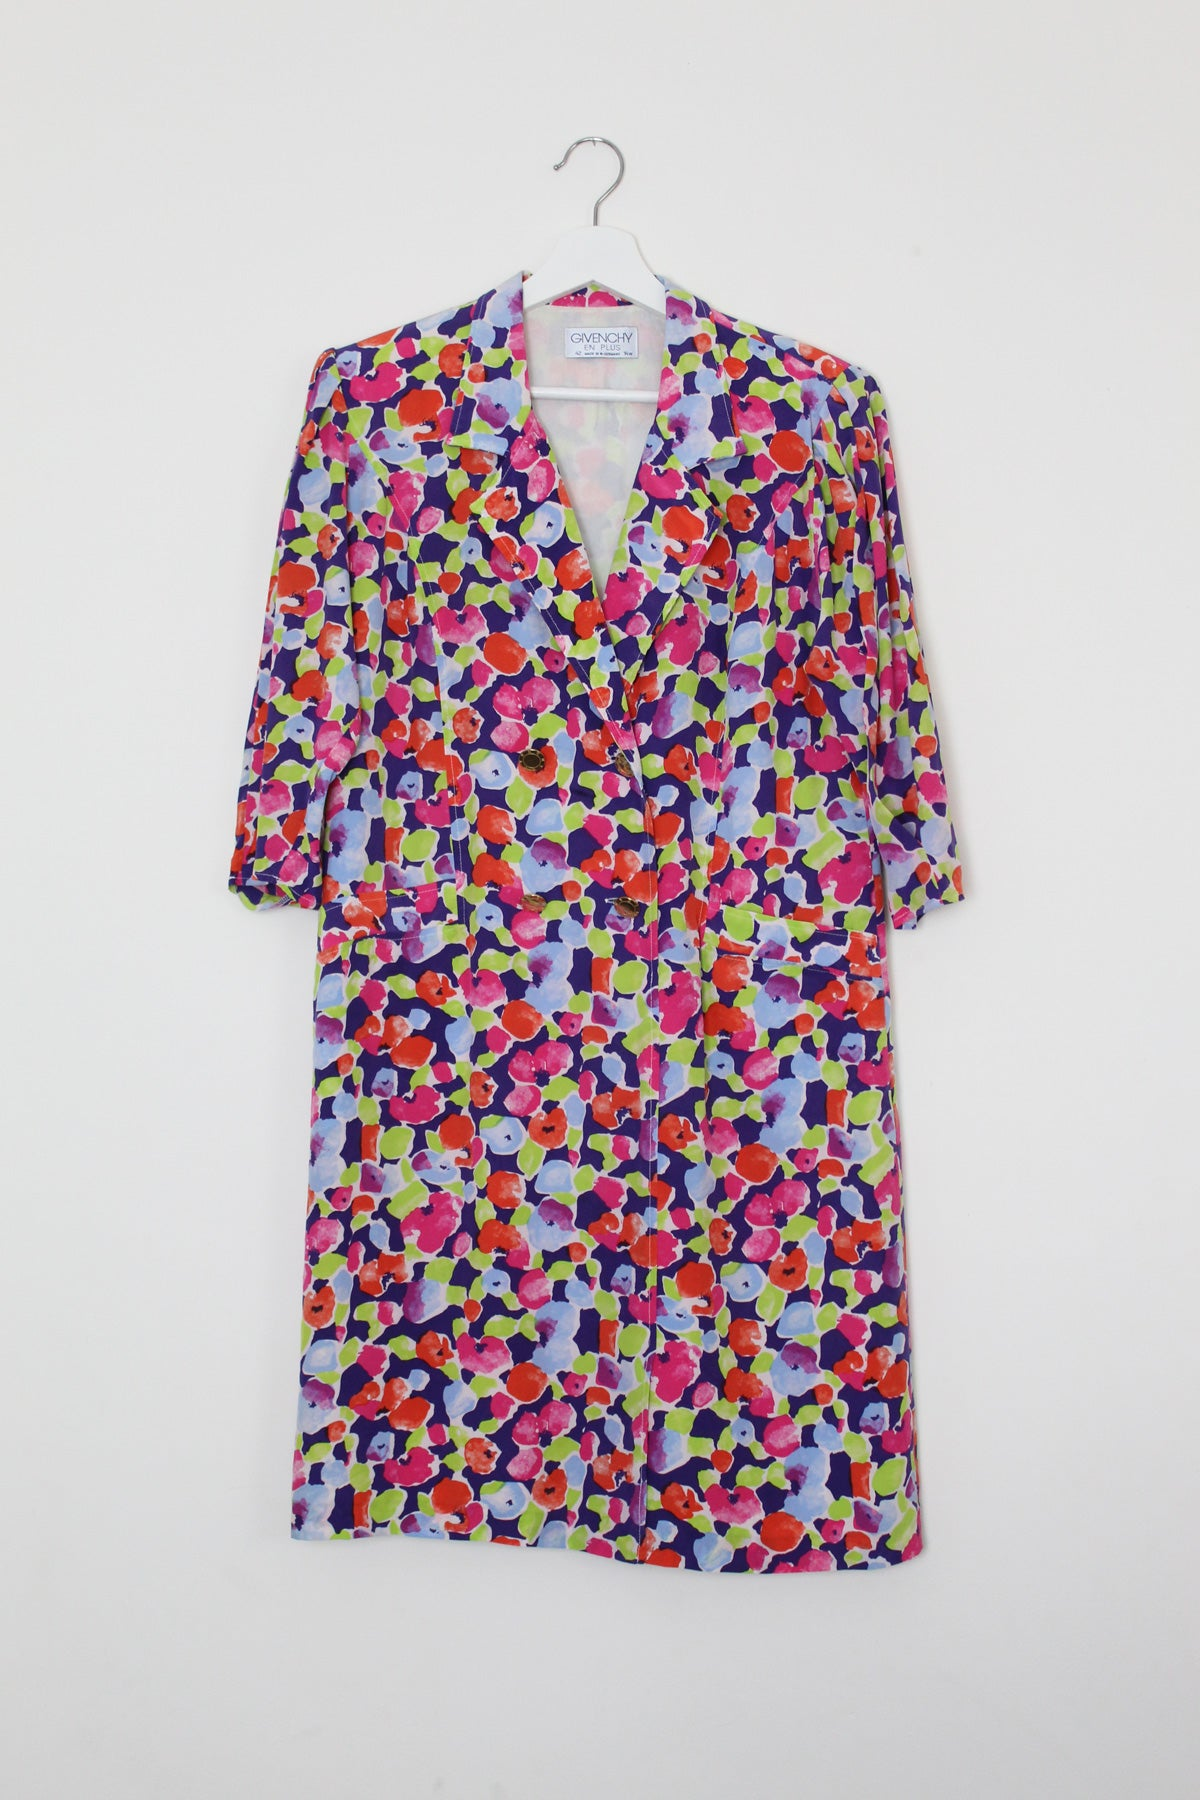 Givenchy Silk Floral Dress